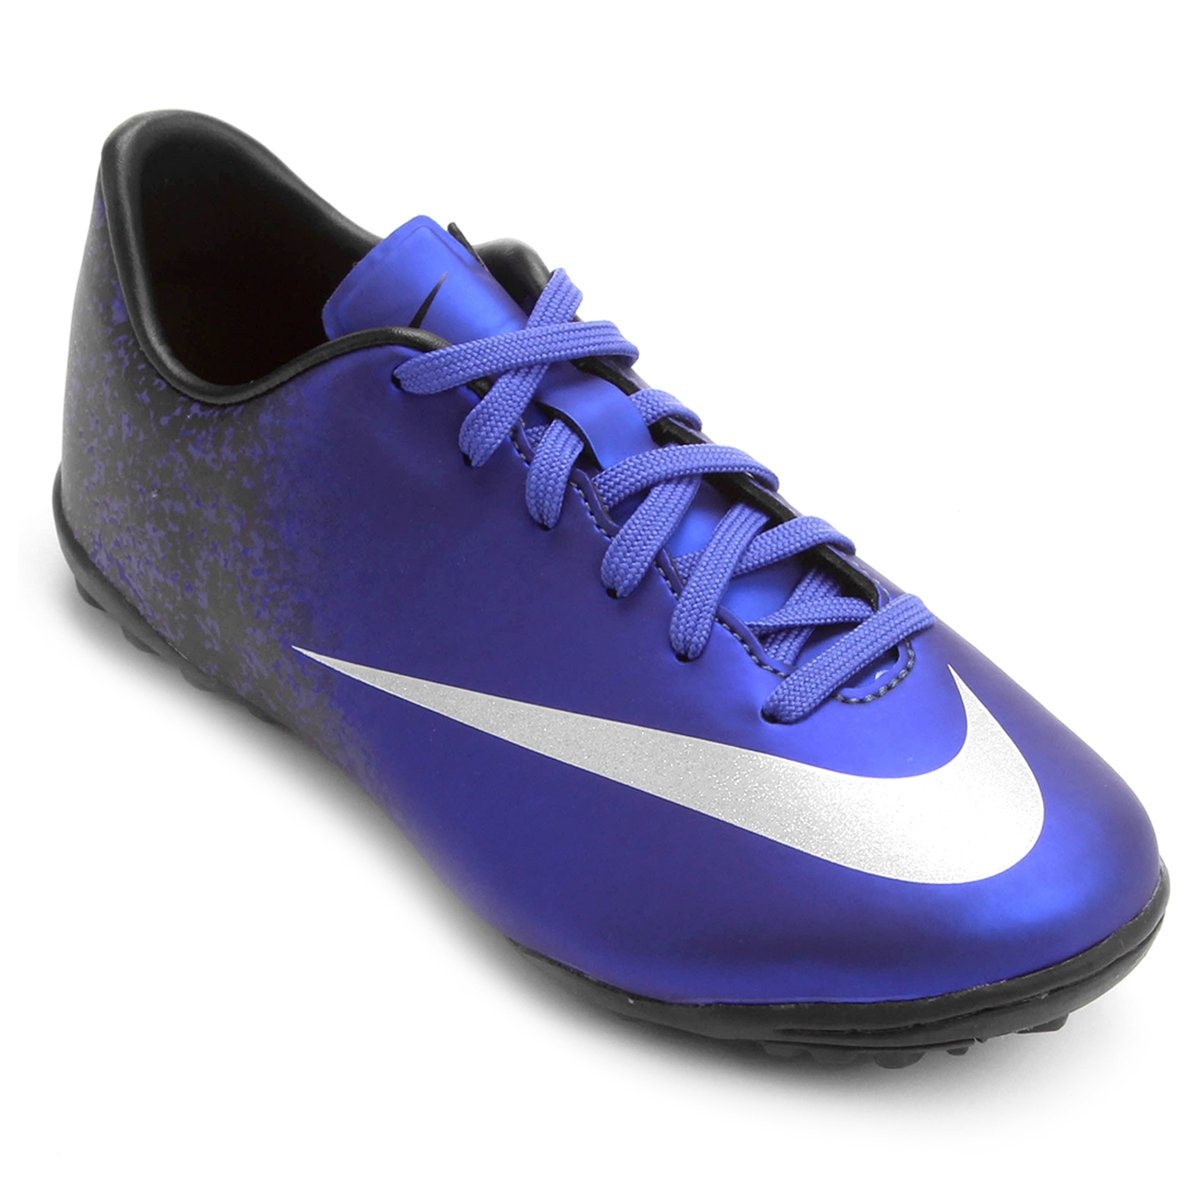 3a0a6bed5a Chuteira Nike JK Mercurial Victory 5 C7 TF Society Infantil - Compre Agora